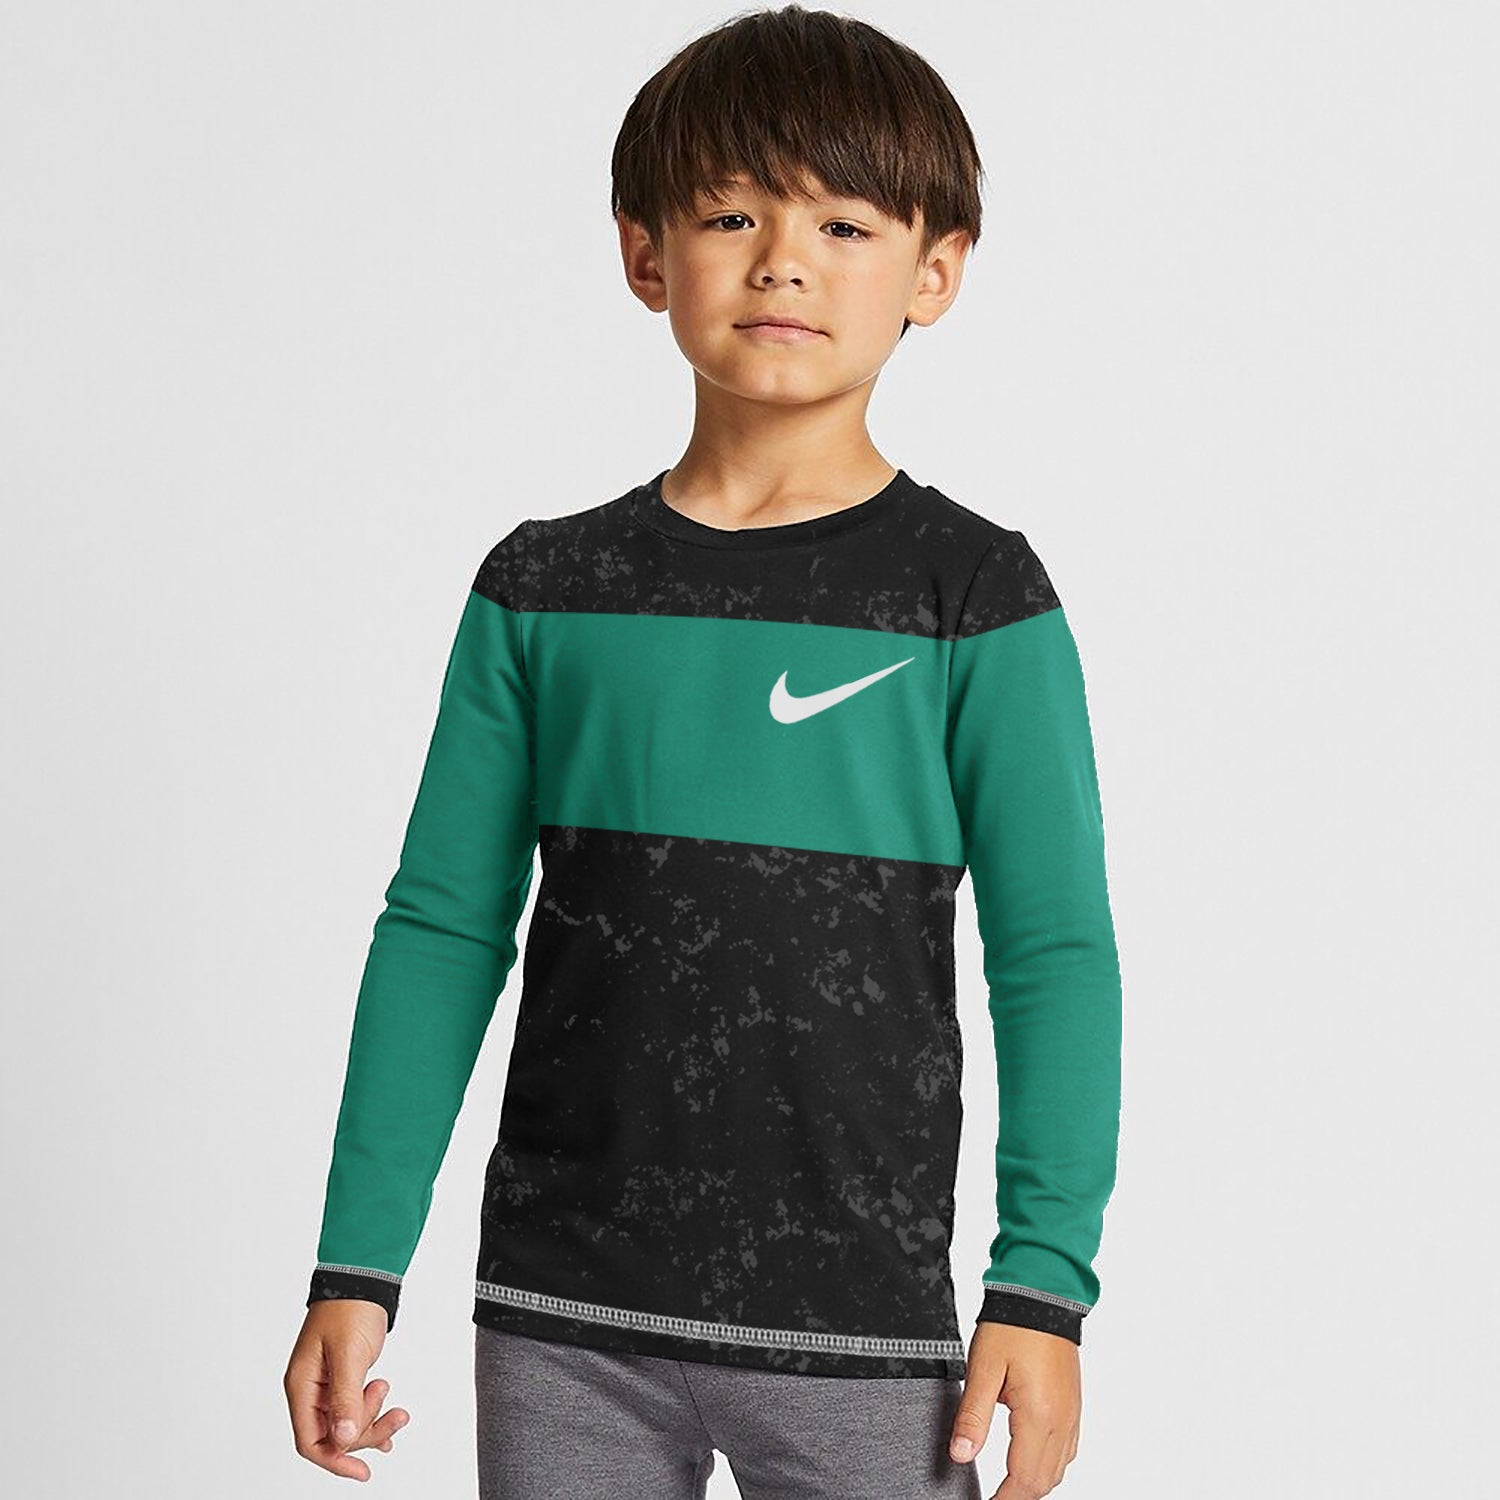 NK Crew Neck Single Jersey Long Sleeve Tee Shirt For Kids-Black Faded With Cyan Green Panel-SP3526